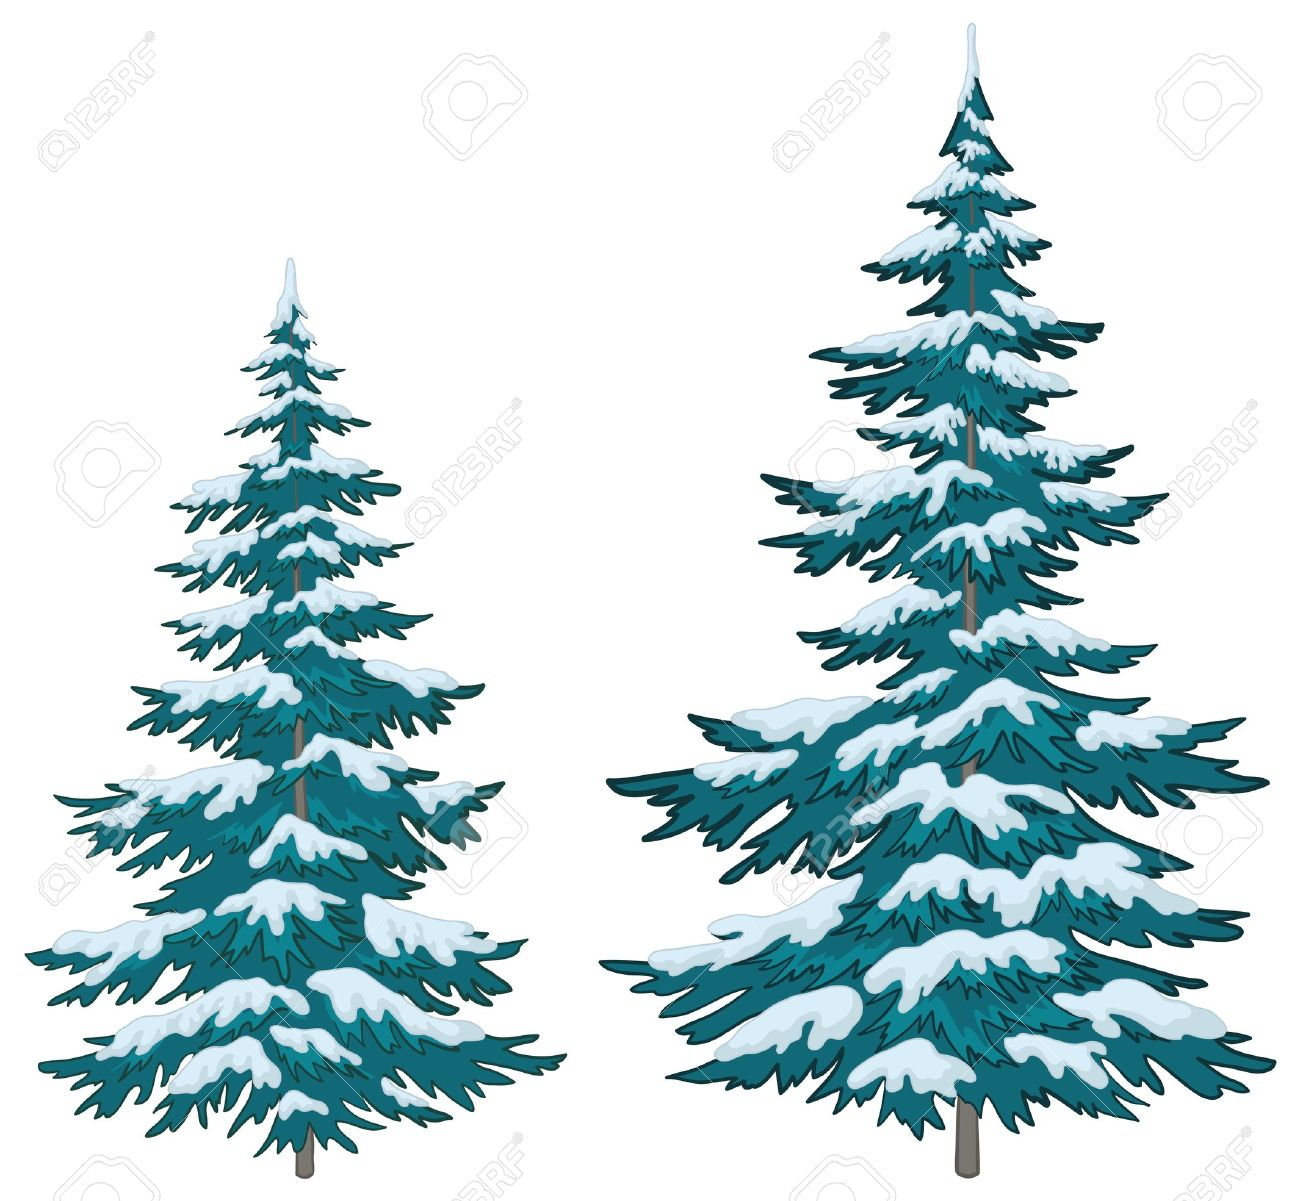 Realistic christmas tree drawing - Needle Tree Vector Christmas Trees Under Snow On A White Background